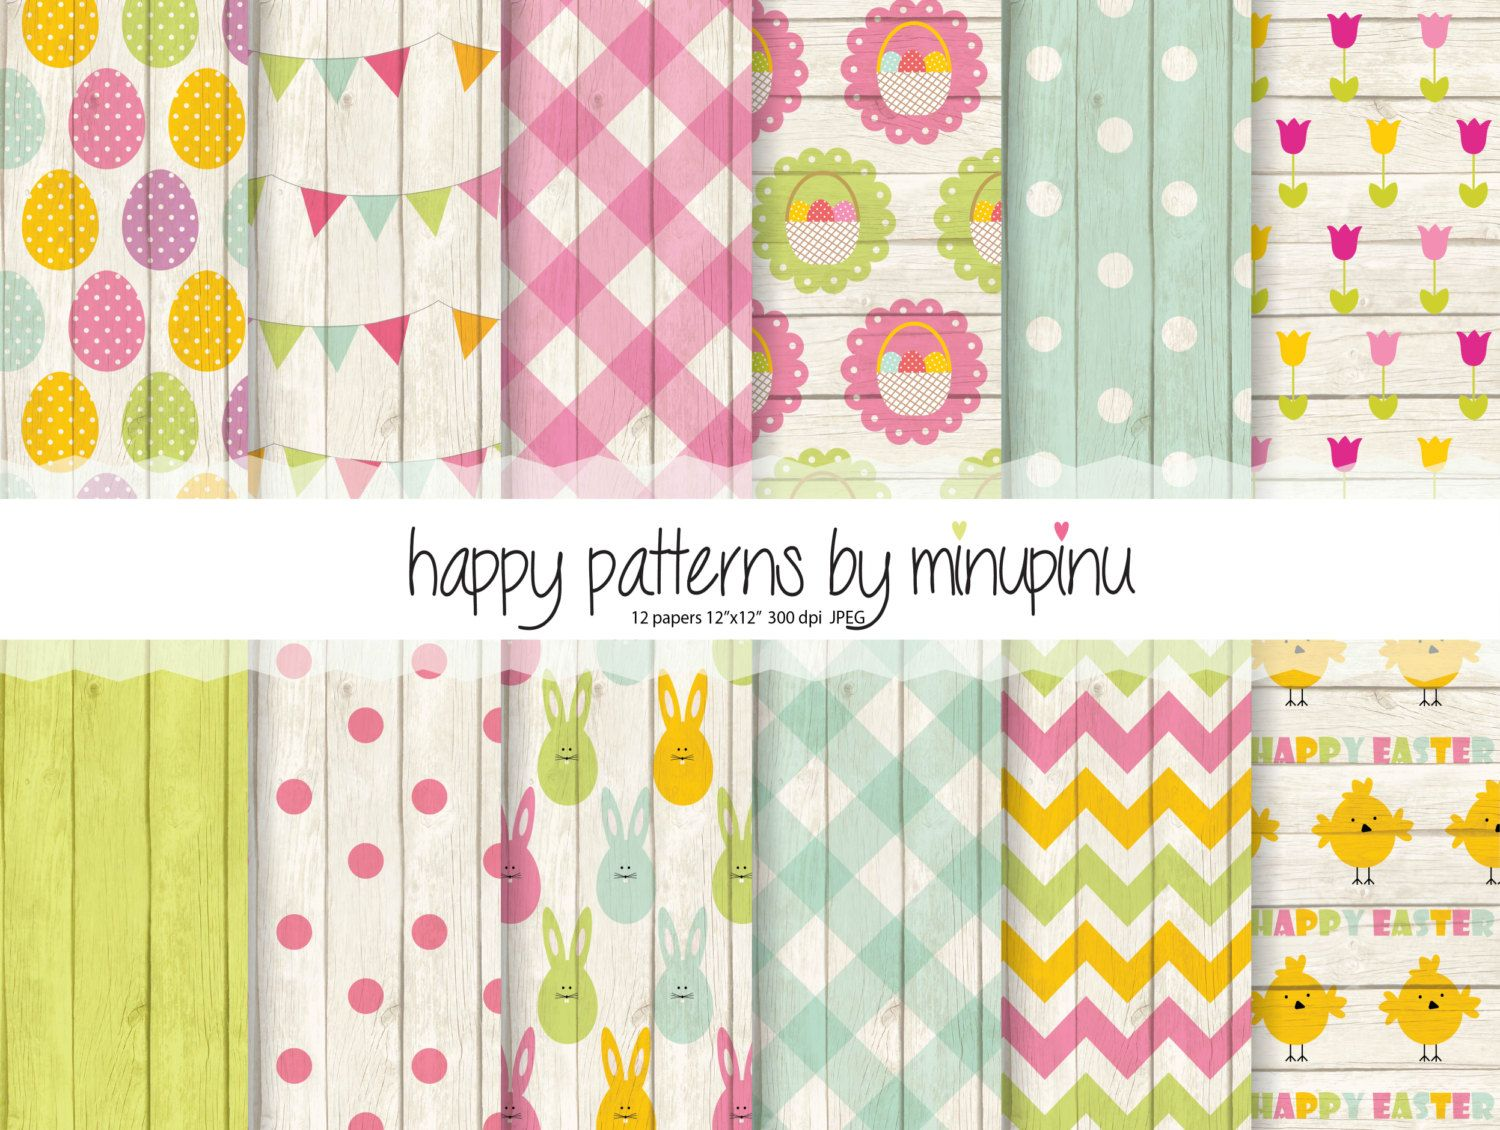 easter digital paper happy easter patterns on wood background with